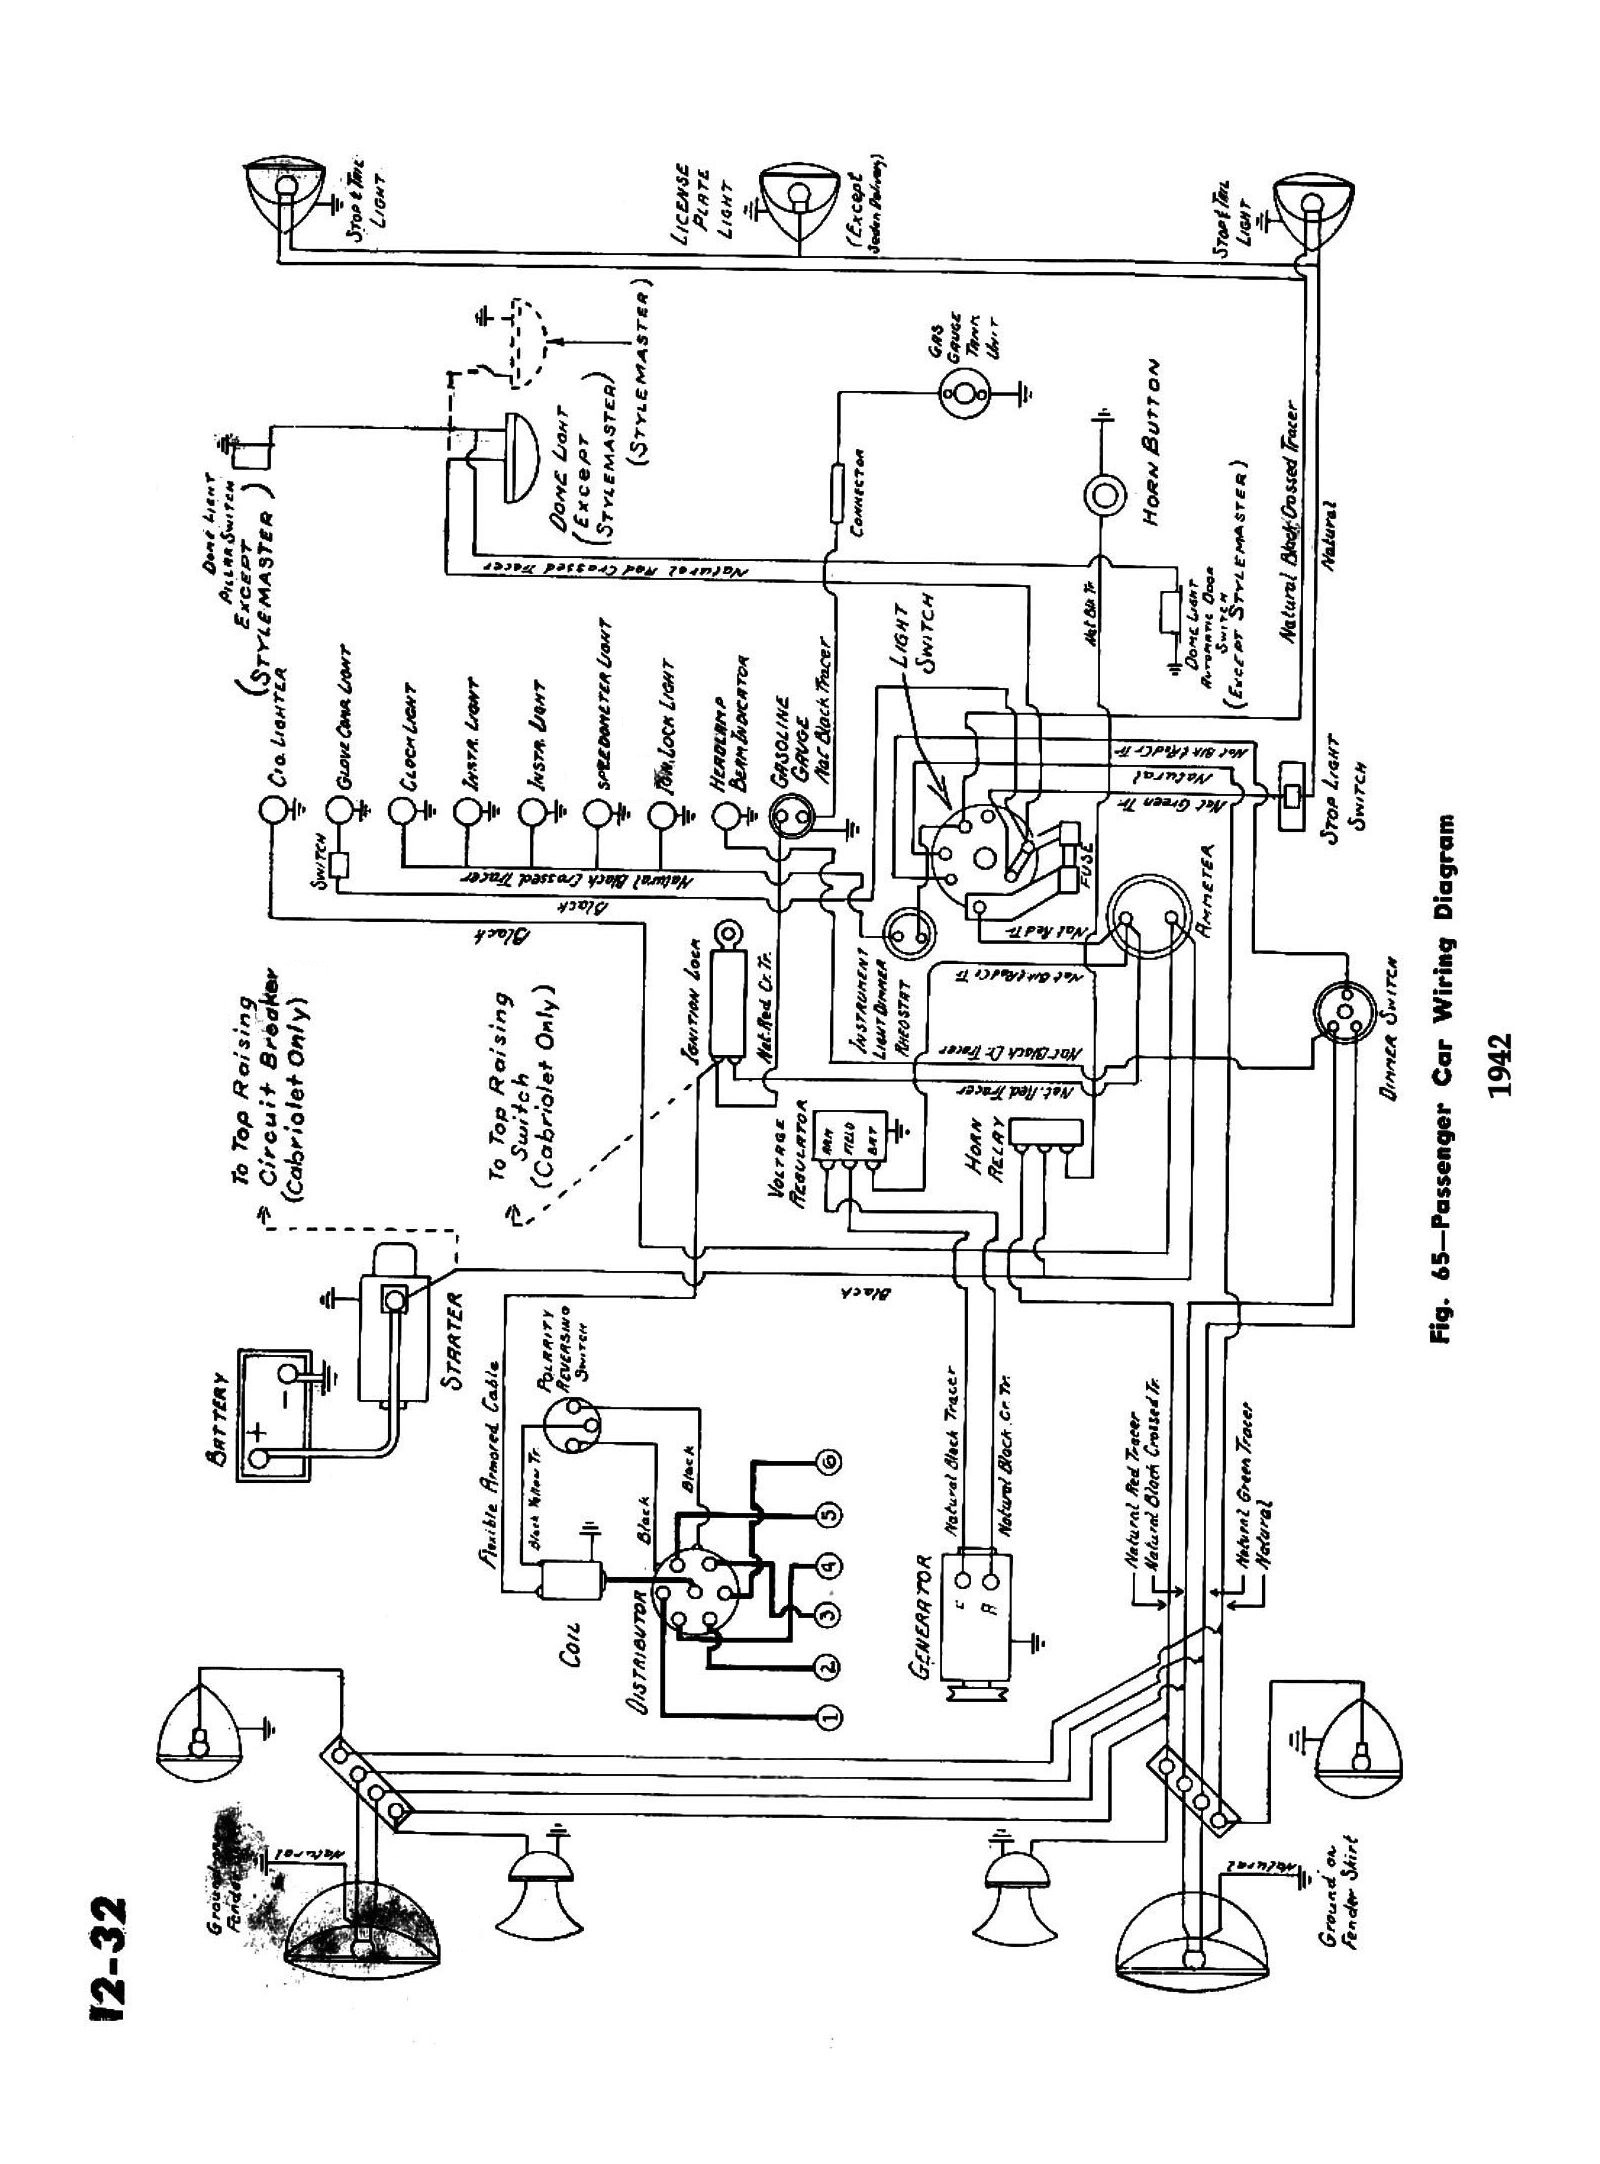 1941 Chevy Wiring Harness Diagram Schematics Engine Image Details Diagrams Vortec